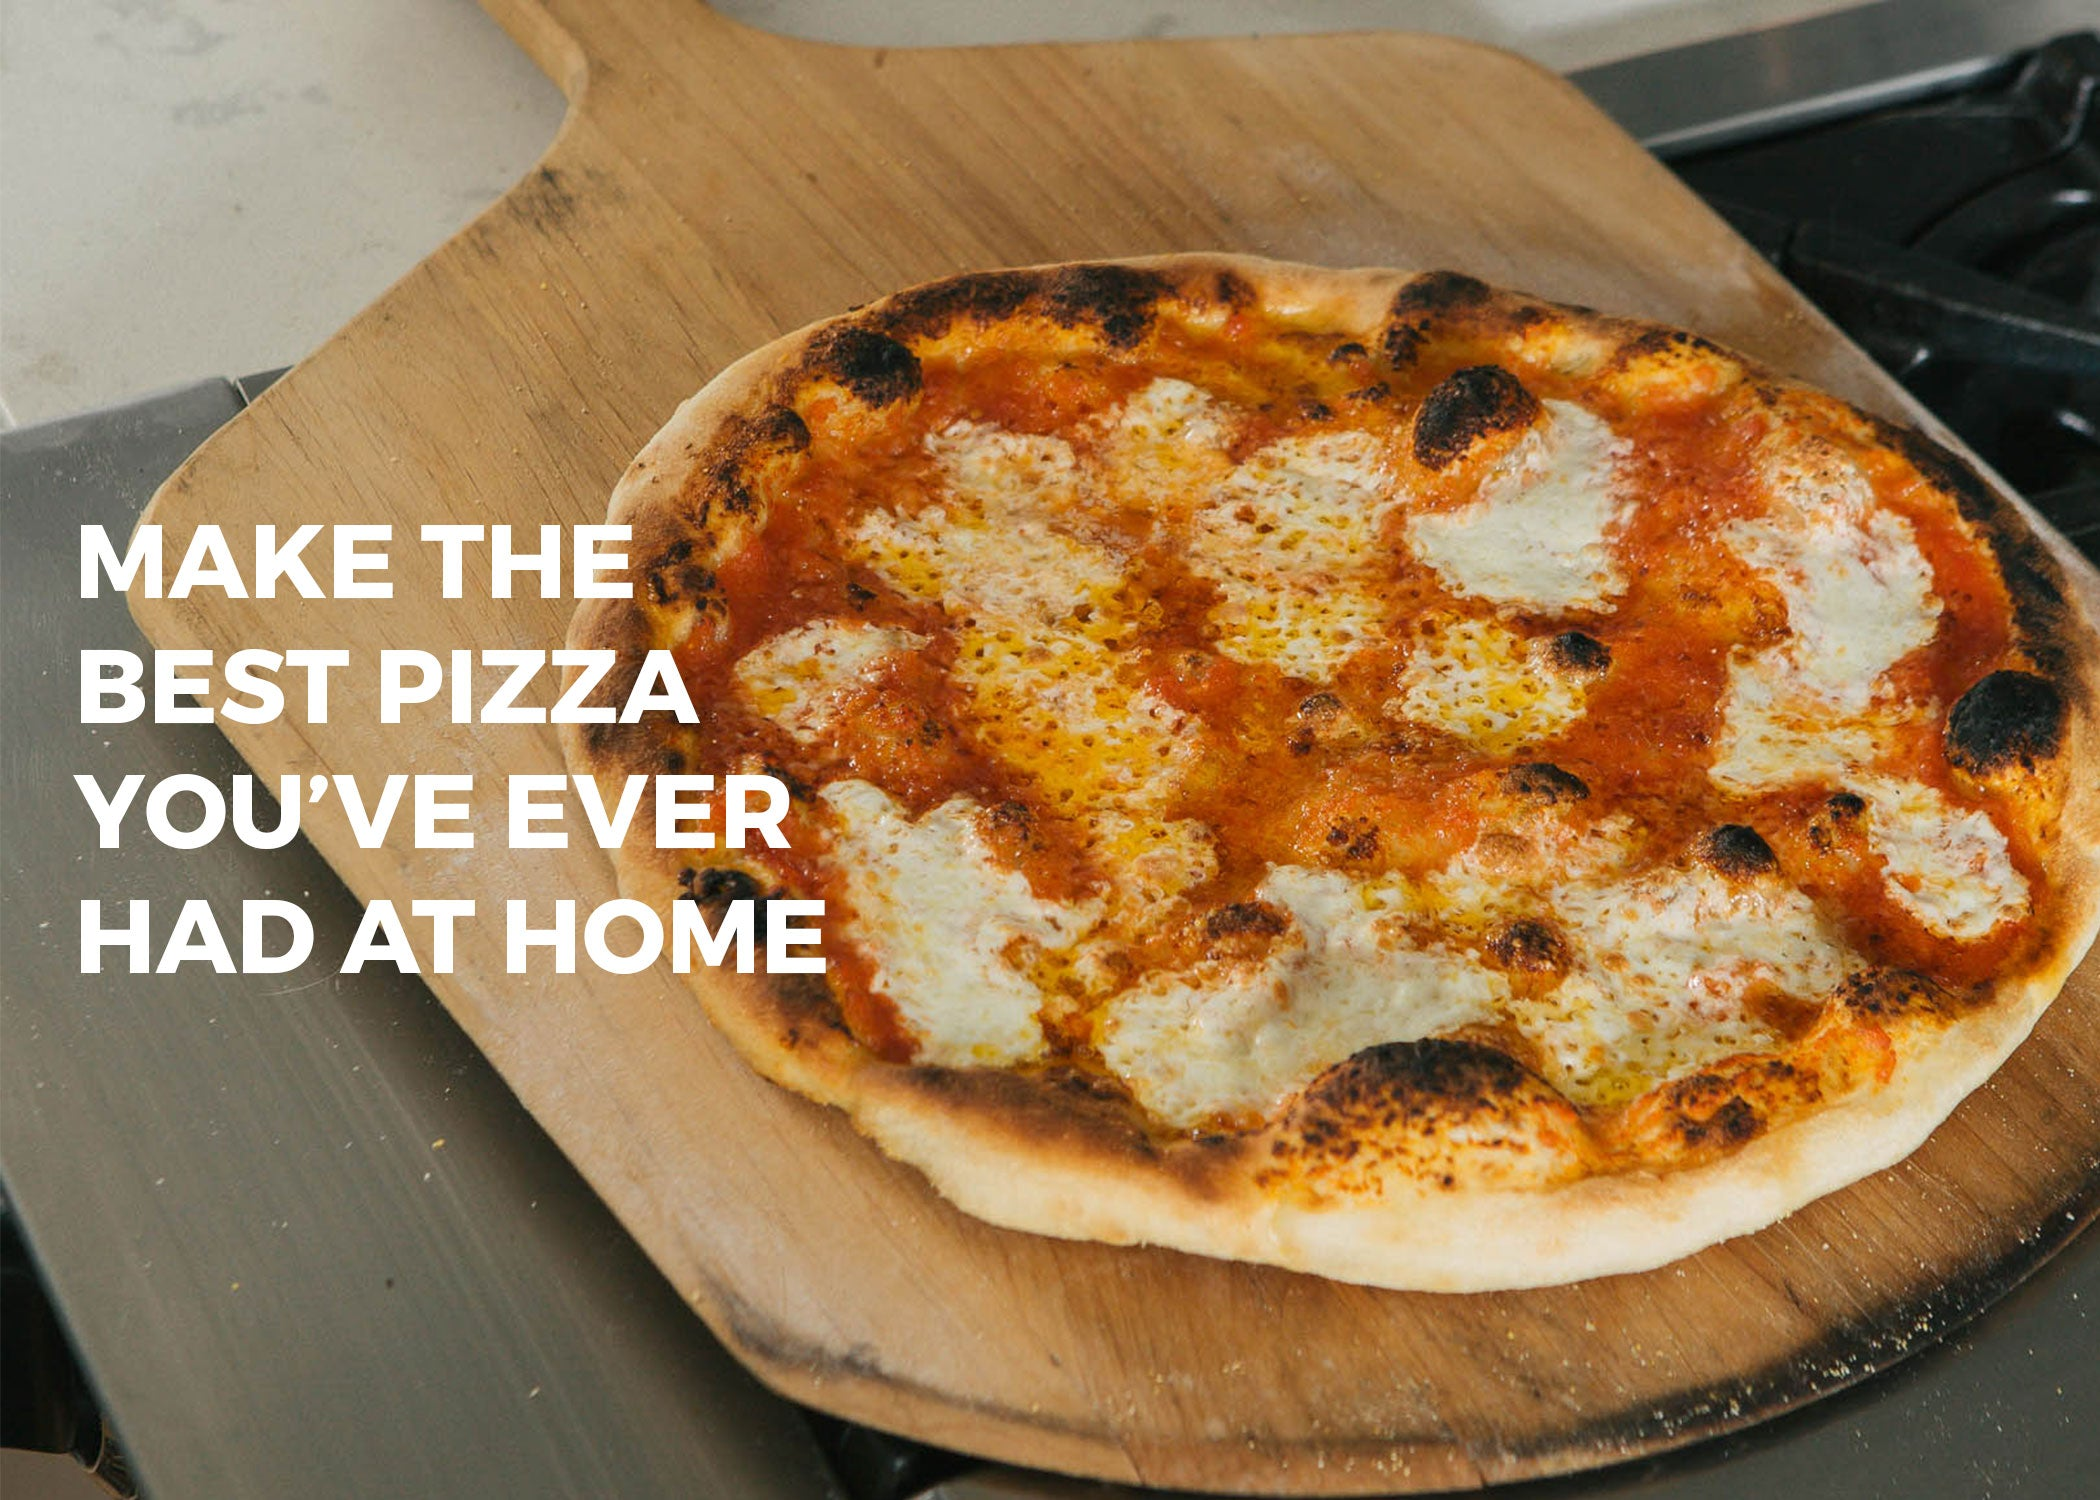 Make the best pizza you've ever made at home